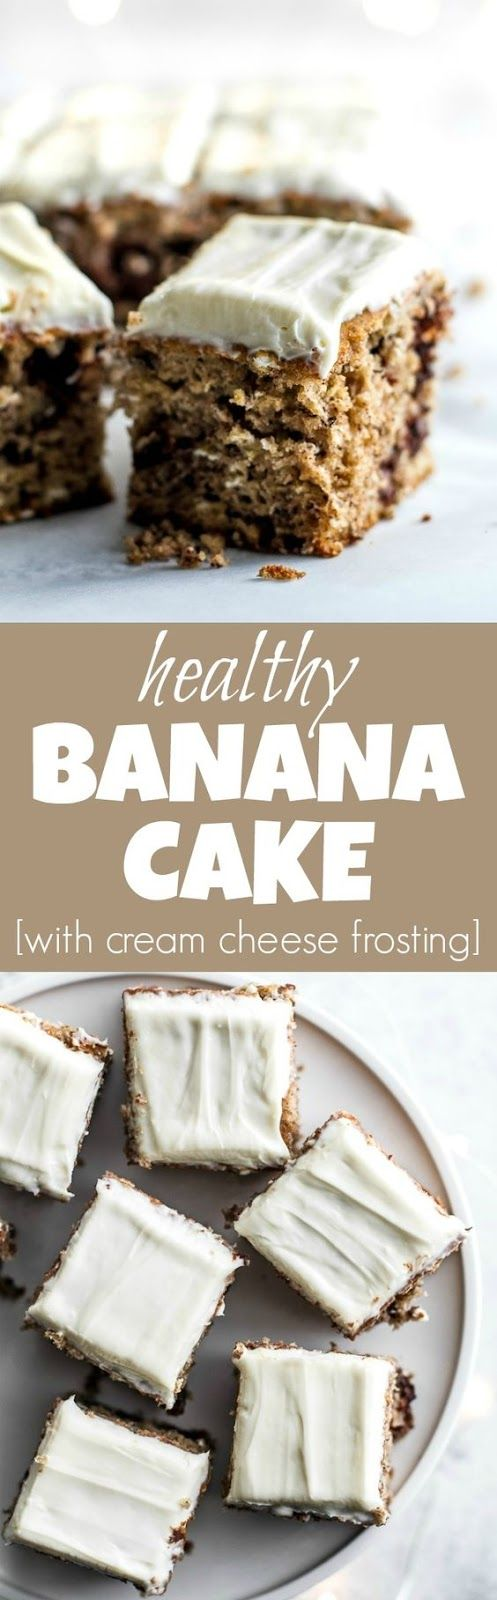 Healthy Banana Cake with Cream Cheese Frosting | Food And Cake Recipes